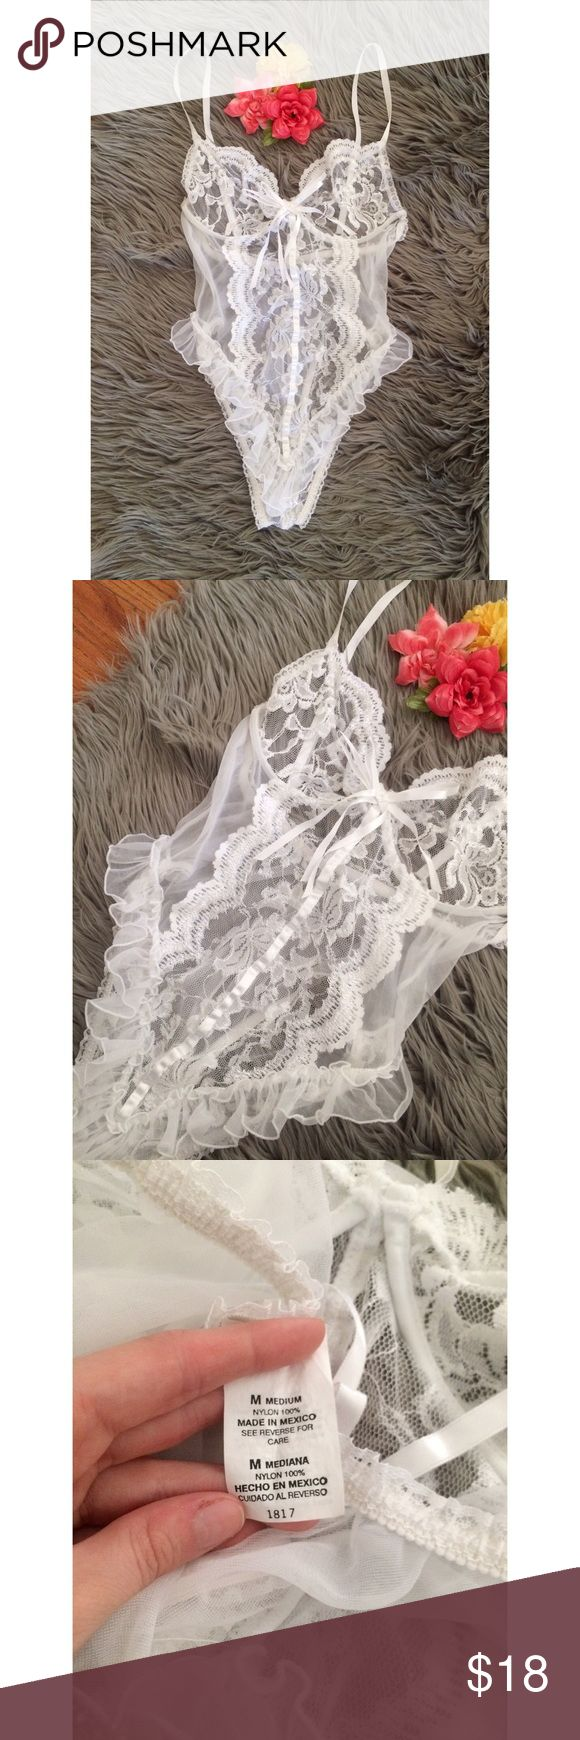 Vintage 80's White Lace Teddy Lingerie 💐 Gorgeous one of a kind vintage 80's teddy lingerie! Features delicate sheer white floral lace details all throughout complete with a special white bow on the front. Clasp closure at crotch. Back and bottom stretch to comfortably fit your body! Has underwire for support and adjustable straps! In like new condition! Size medium, could also fit a small! Bust will best fit a larger B or C cup :) Vintage Intimates & Sleepwear Chemises & Slips